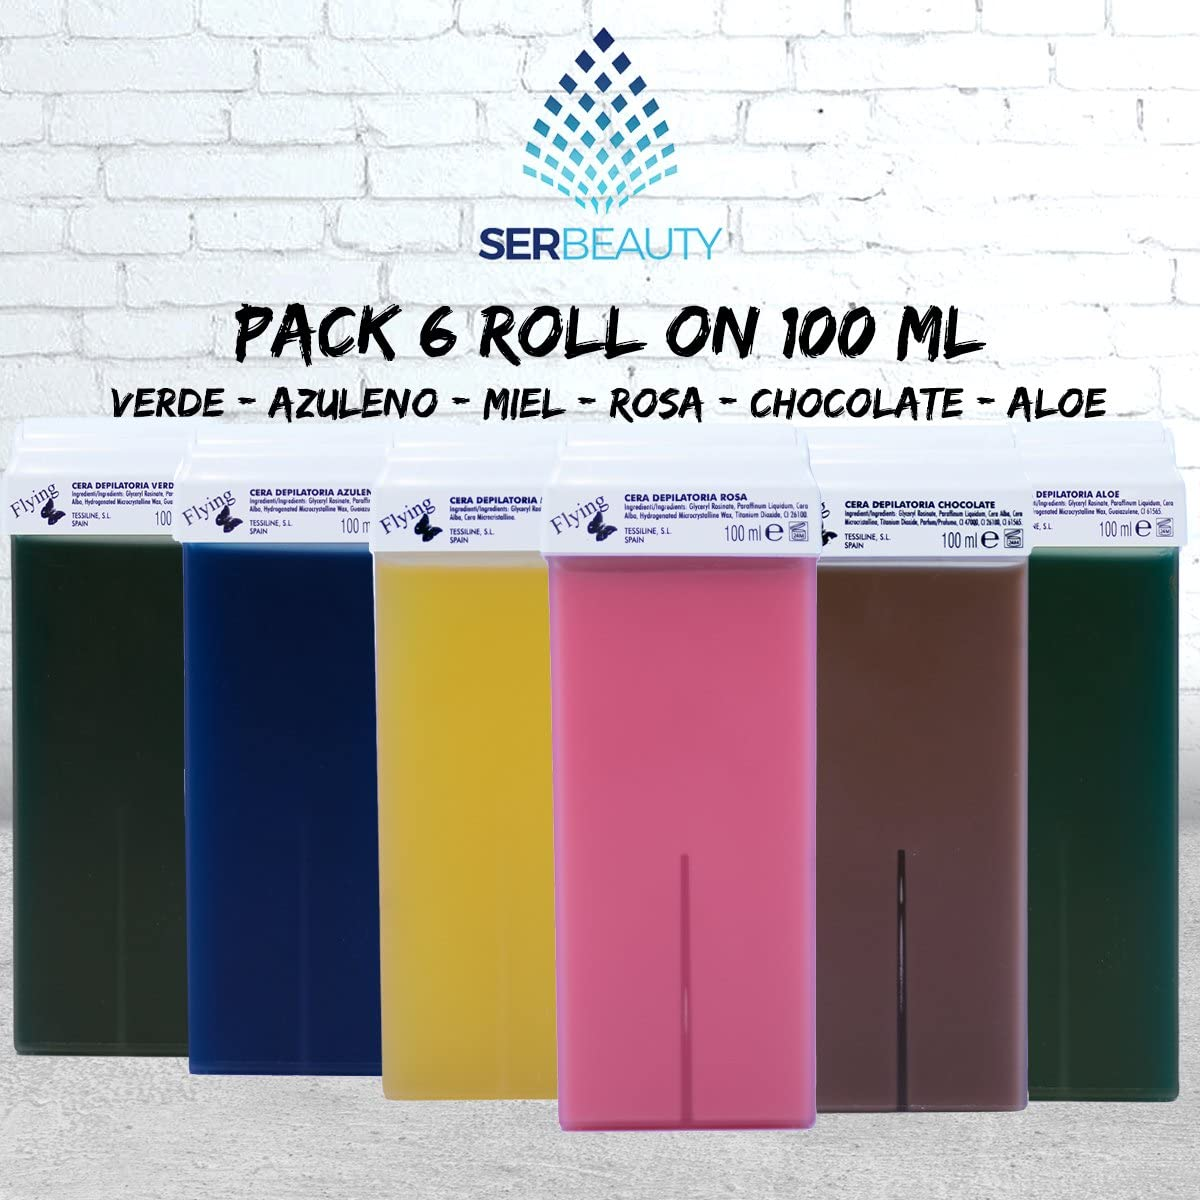 Pack 6 Roll On Cera 100ml/6 diferentes colores/Rosa, Chocolate ...